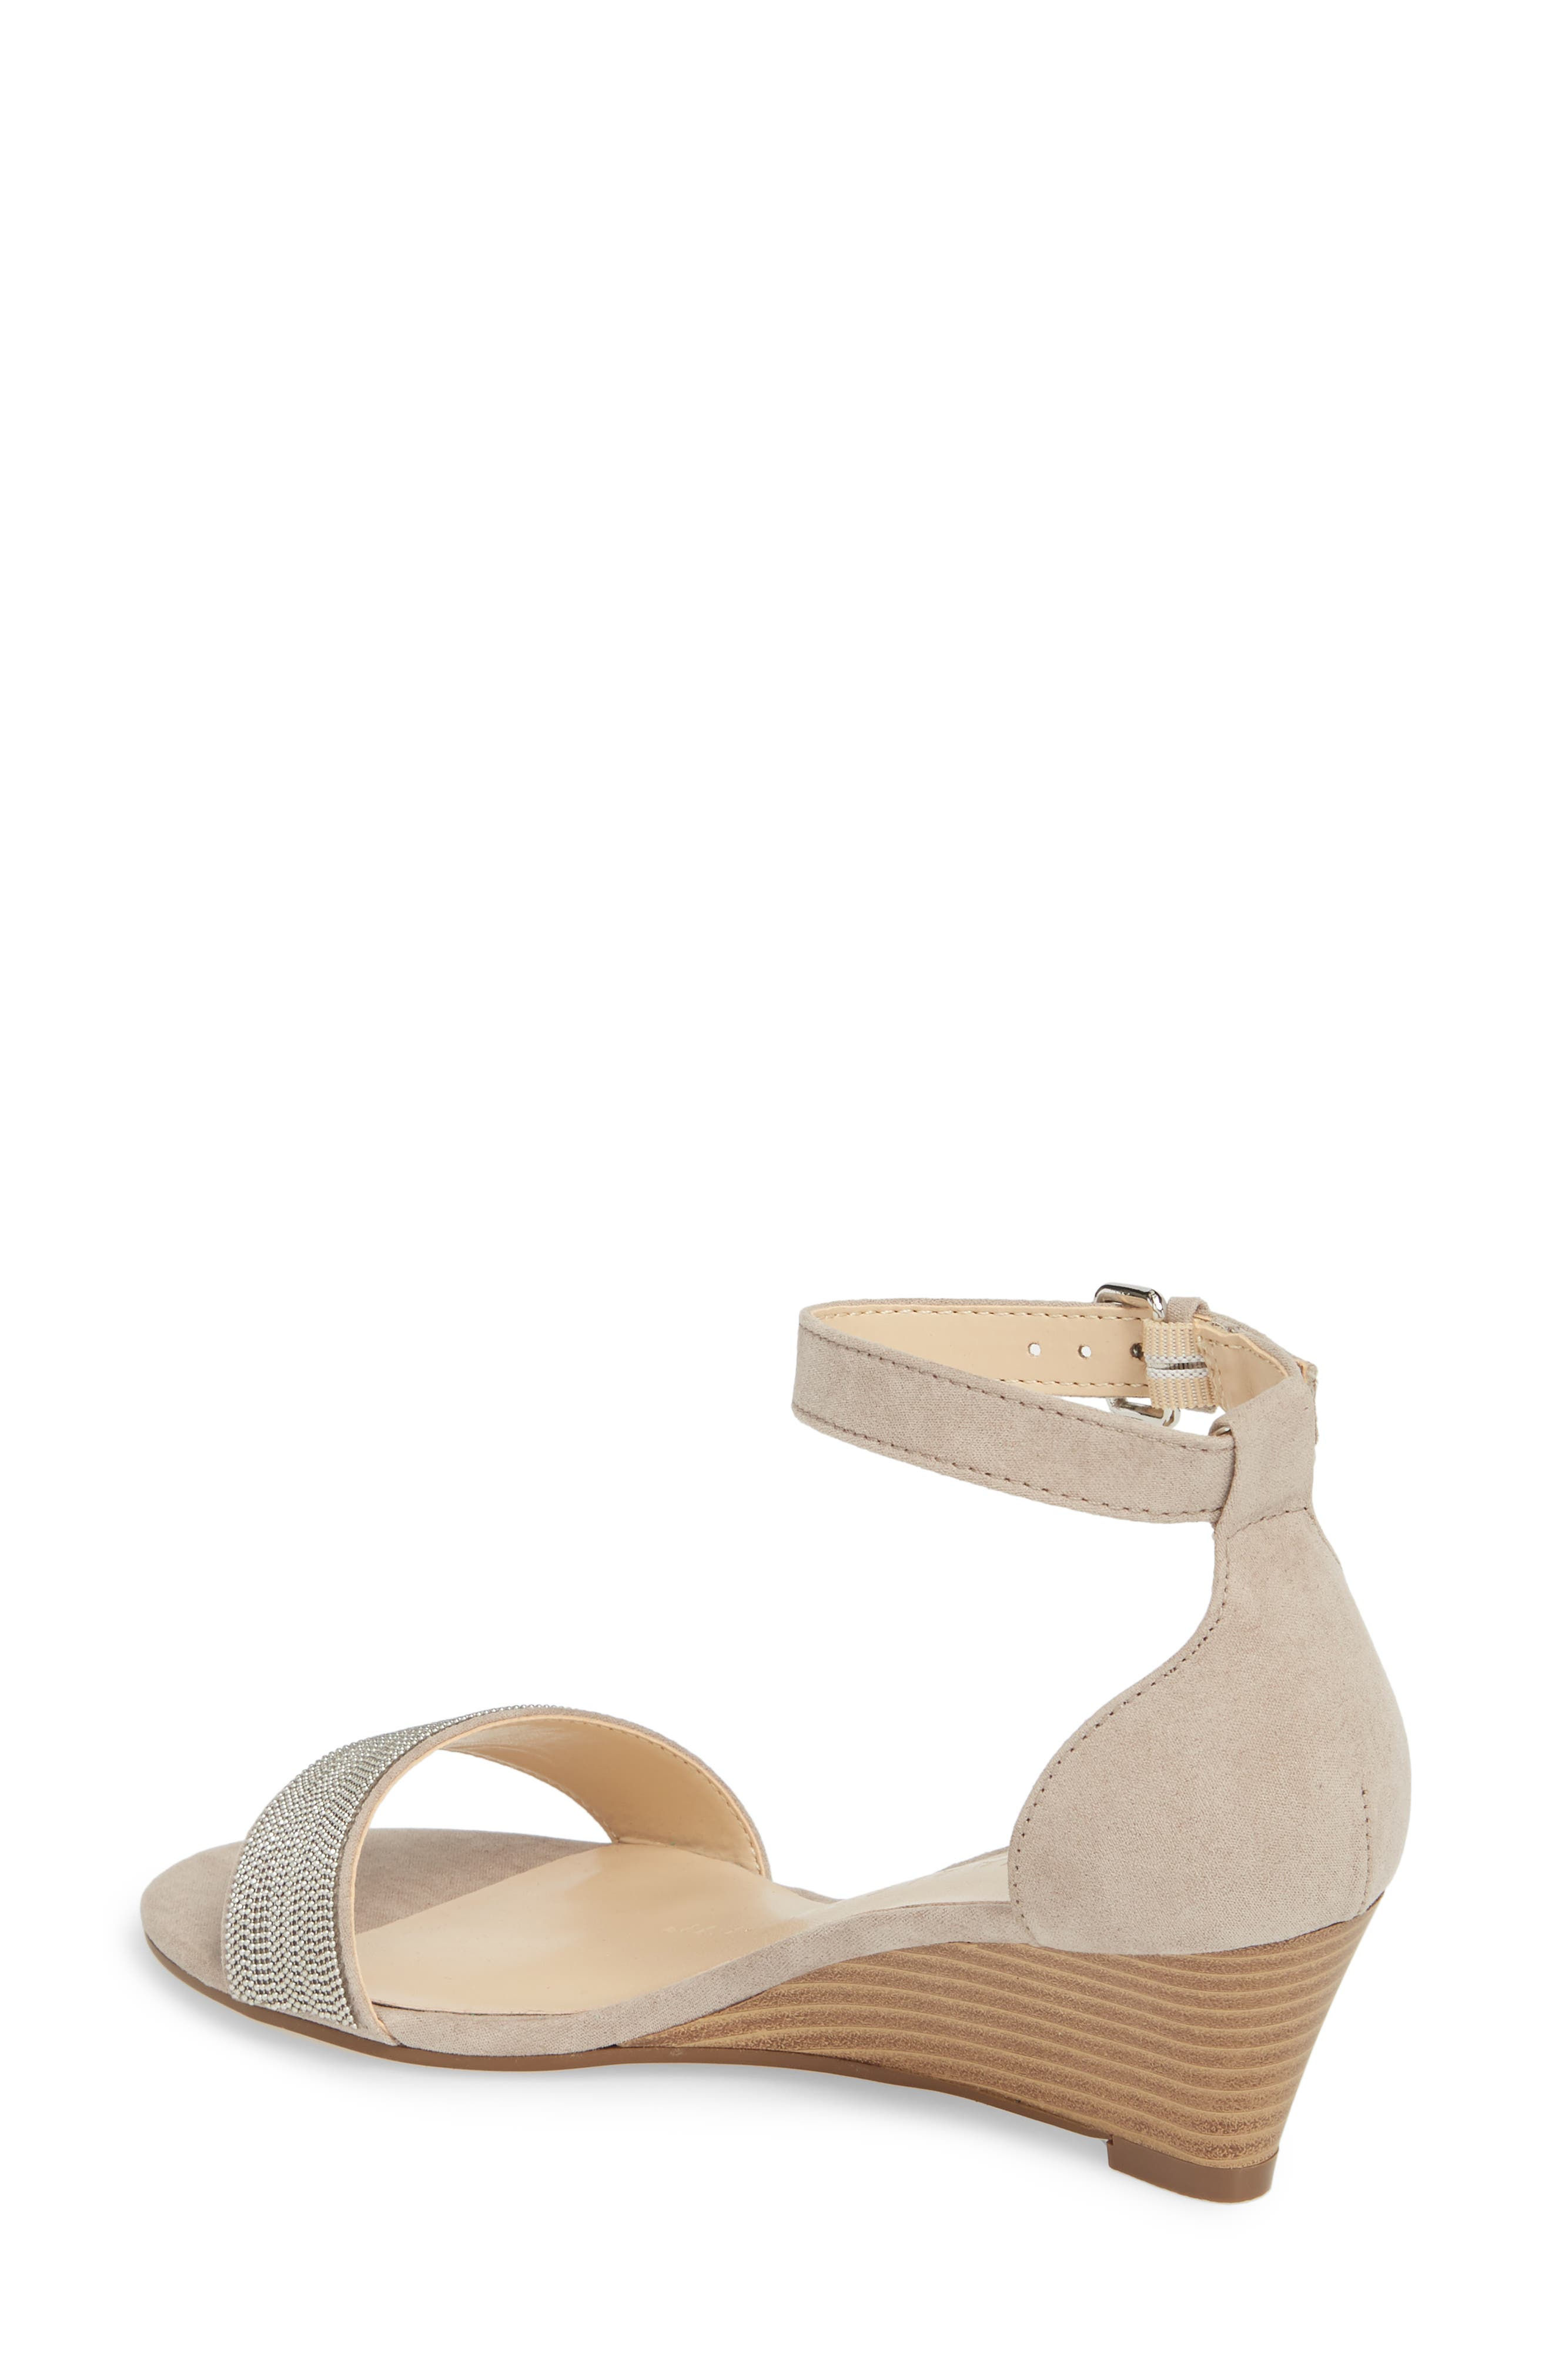 Enfield Ankle Strap Wedge Sandal,                             Alternate thumbnail 2, color,                             TAUPE SUEDE